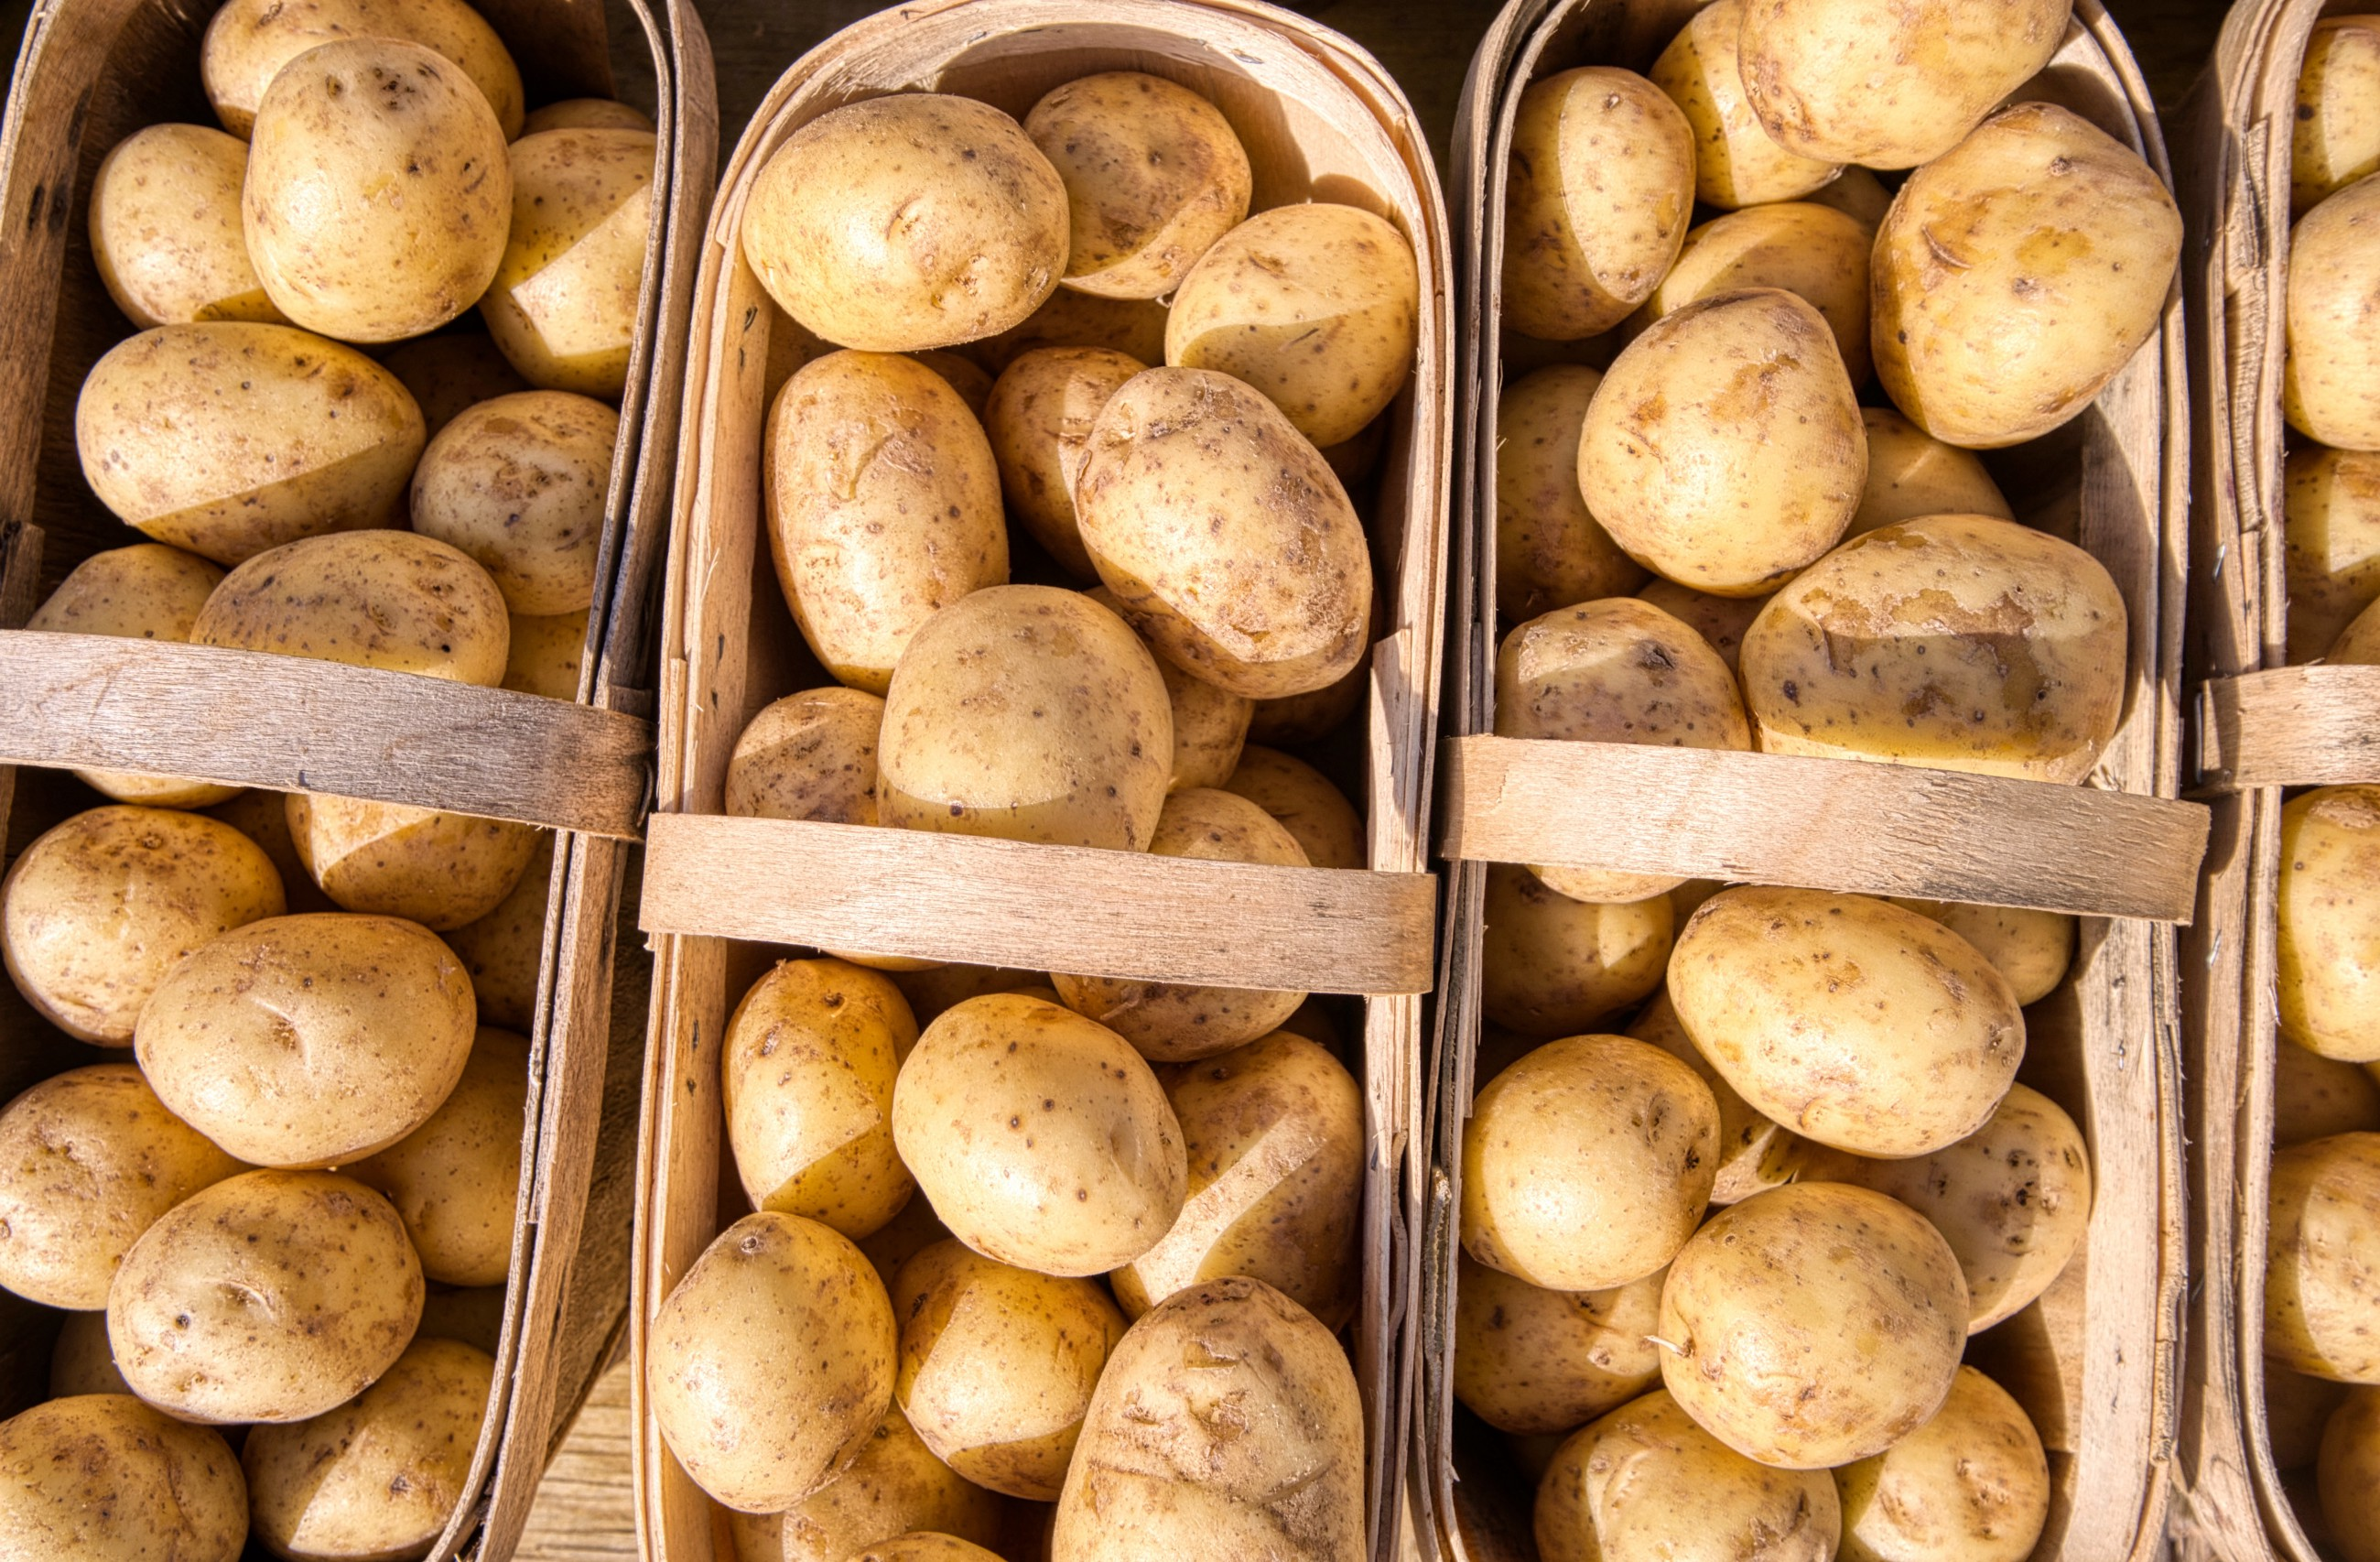 I Ate Only Potatoes for an Entire Week. It Was a Weird, Fun Challenge.